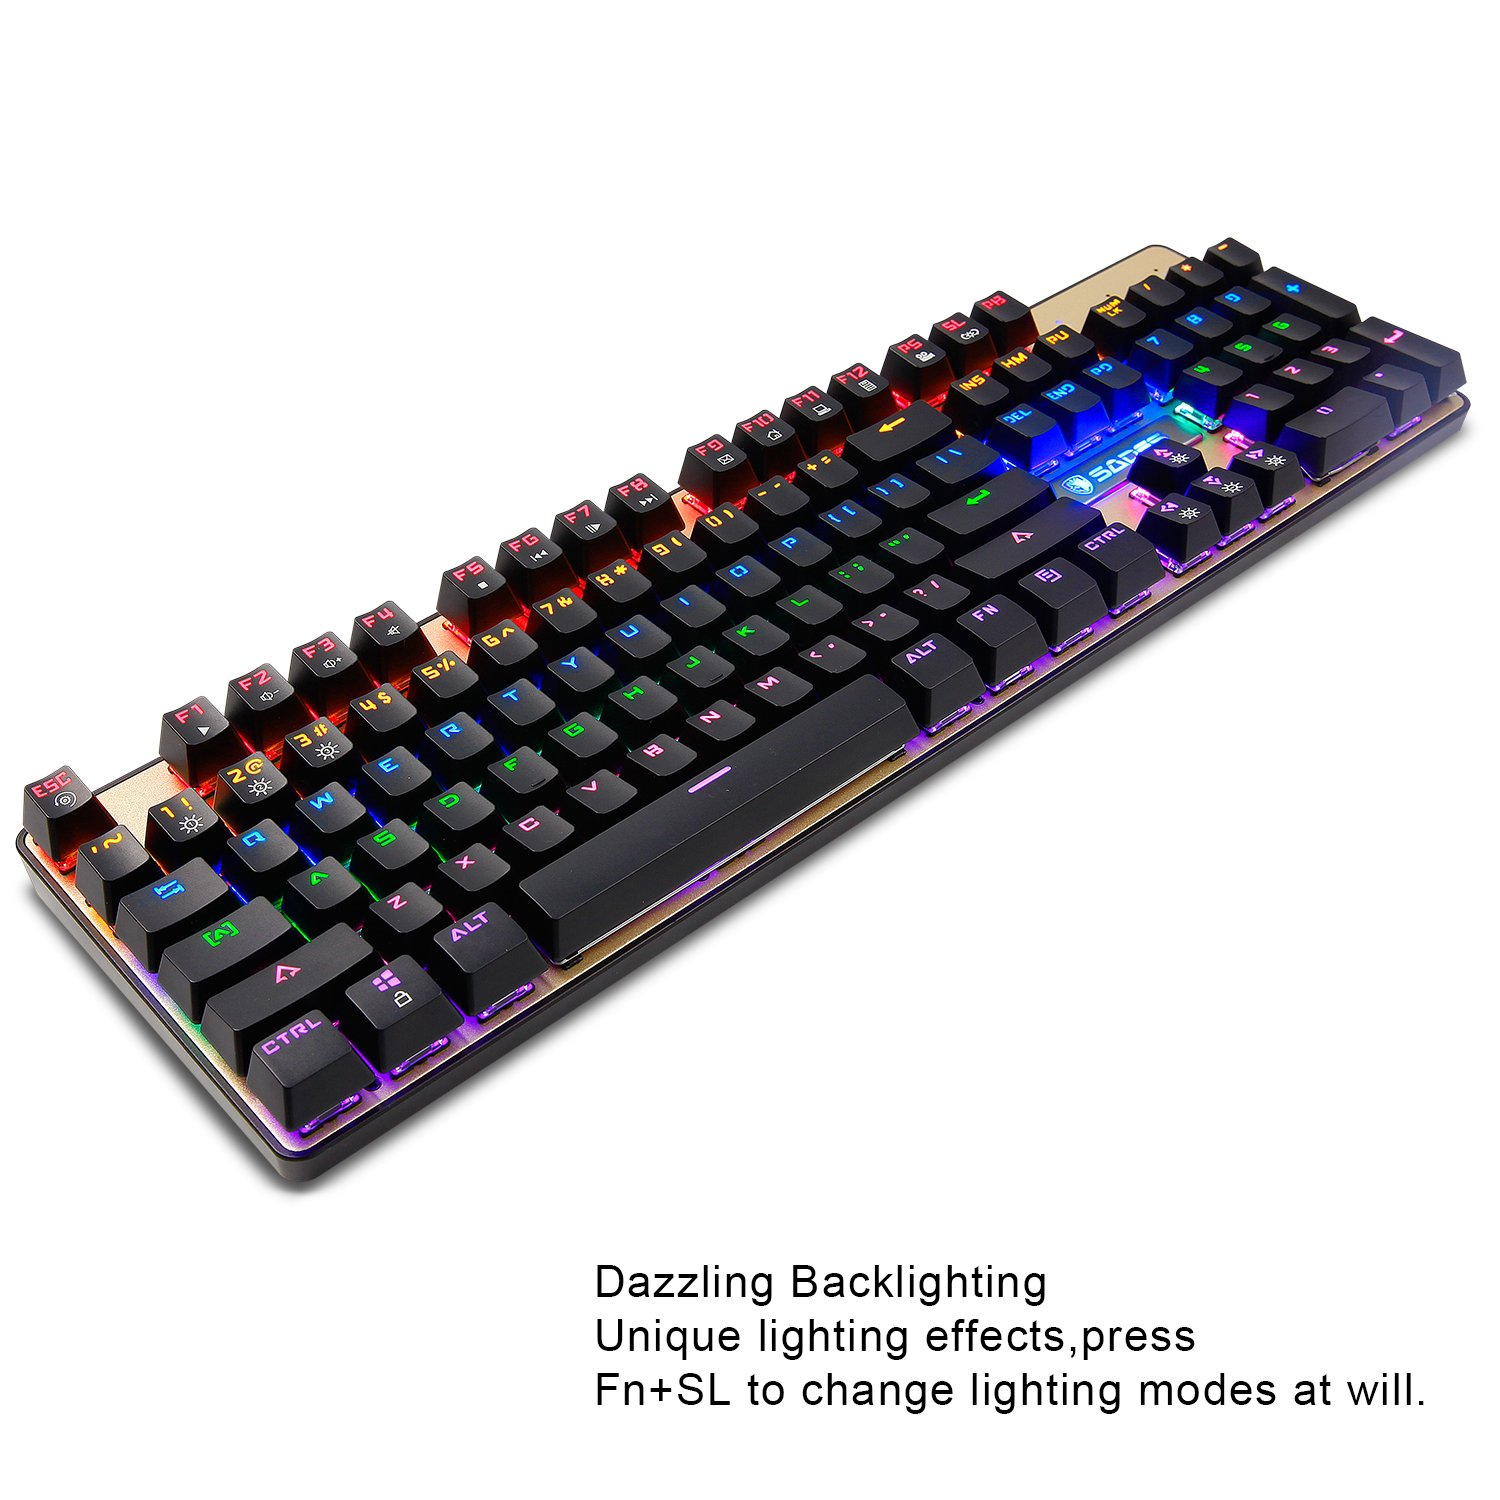 Amazon.com: Mechanical Keyboard and Mouse combo,SADES K10 LED Backlit Wired Gaming Keyboard and Mouse Combo, Mechanical Feel with Mutilmedia Keys and Blue ...